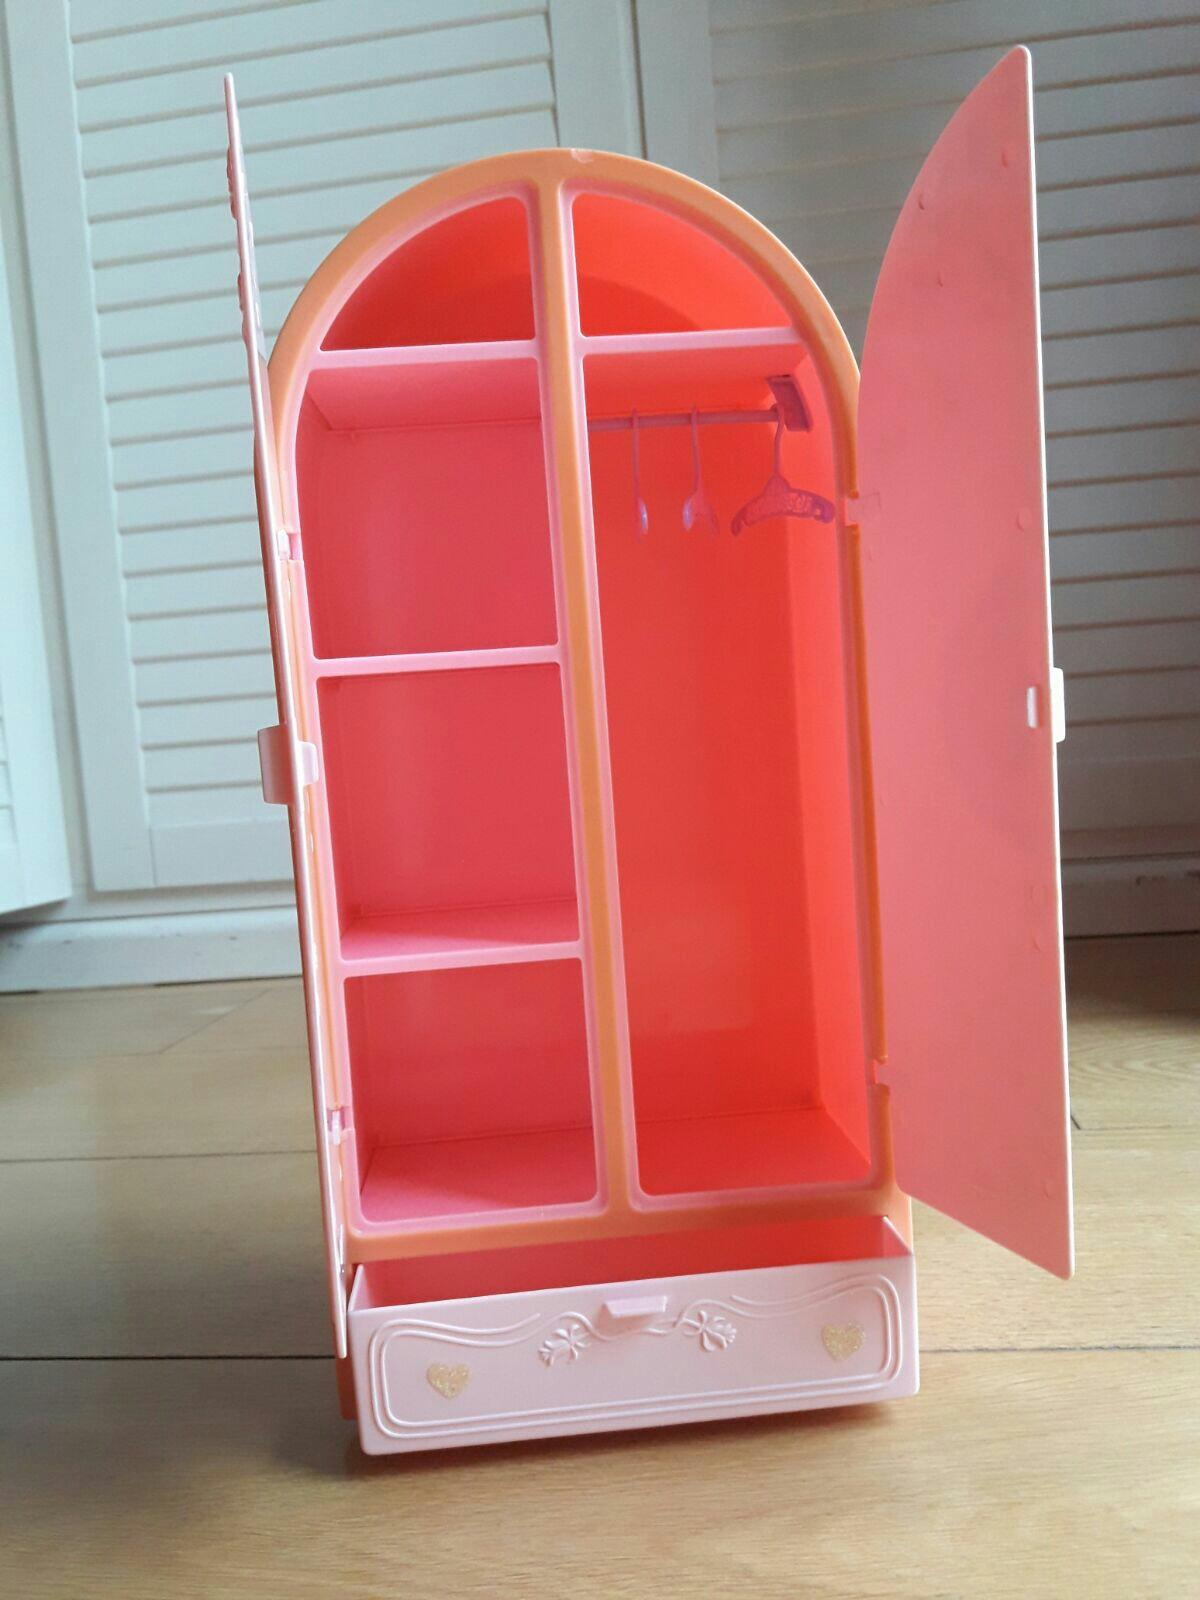 Armadio Barbie Vintage Armadio Barbie Vintage In 51100 Pistoia For 15 00 For Sale Shpock